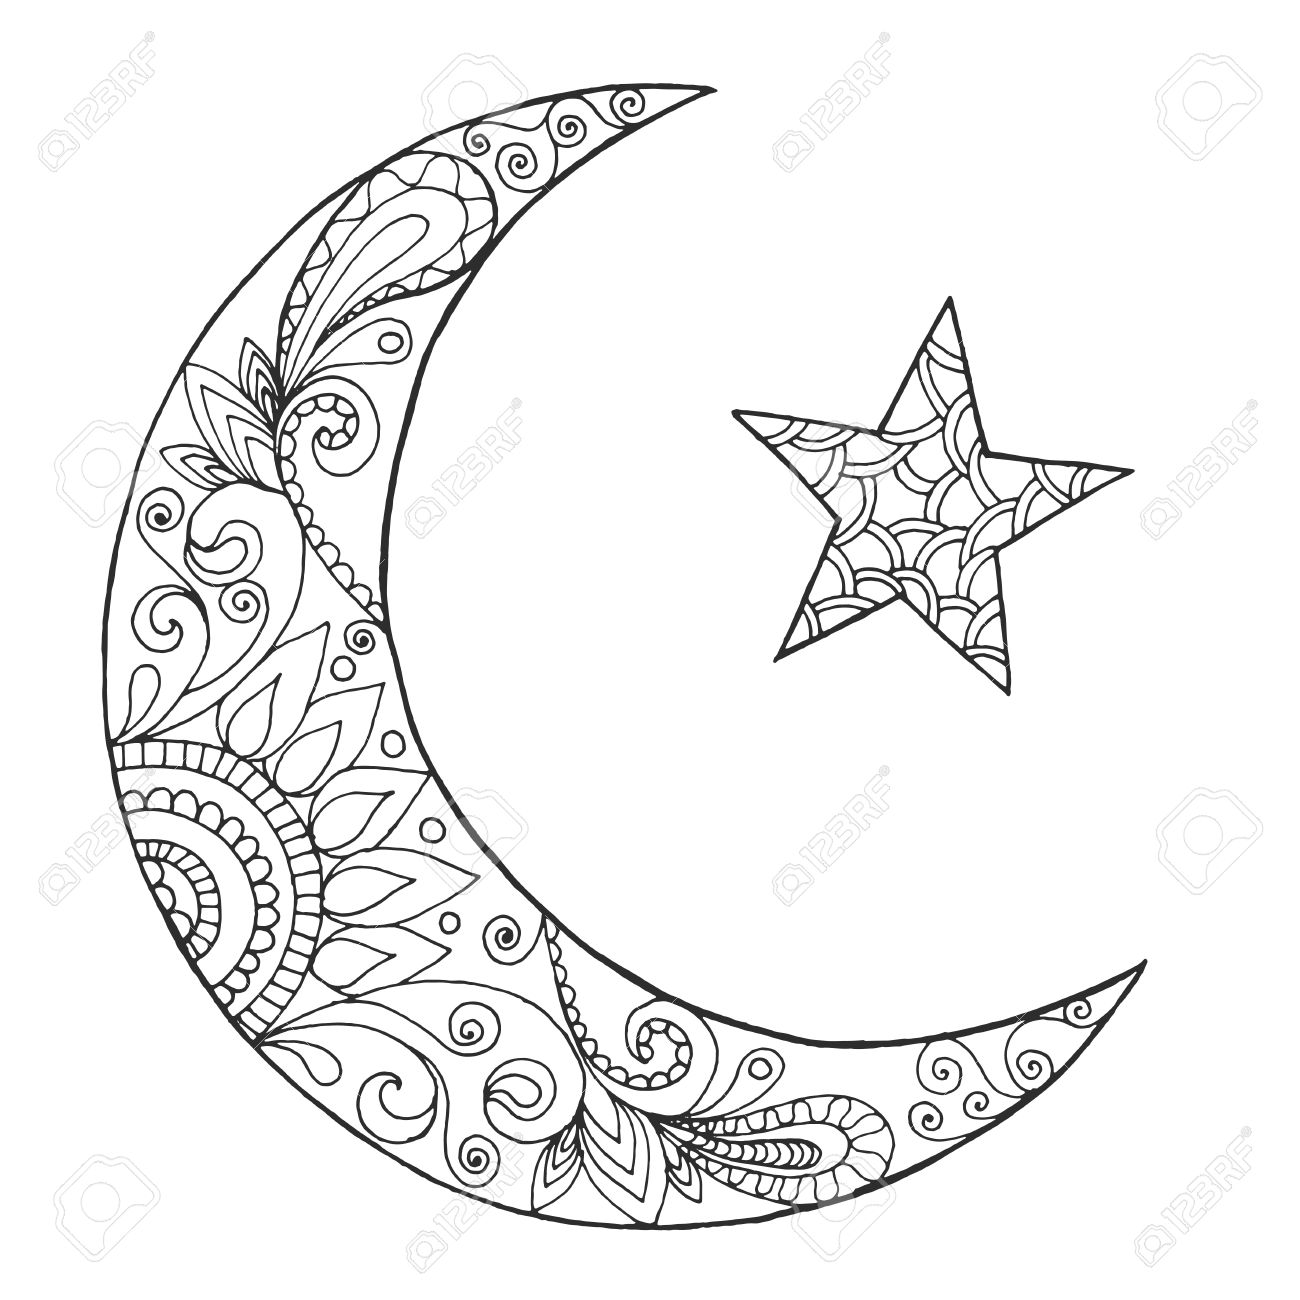 ramadan kareem half moon greeting design coloring page engraved